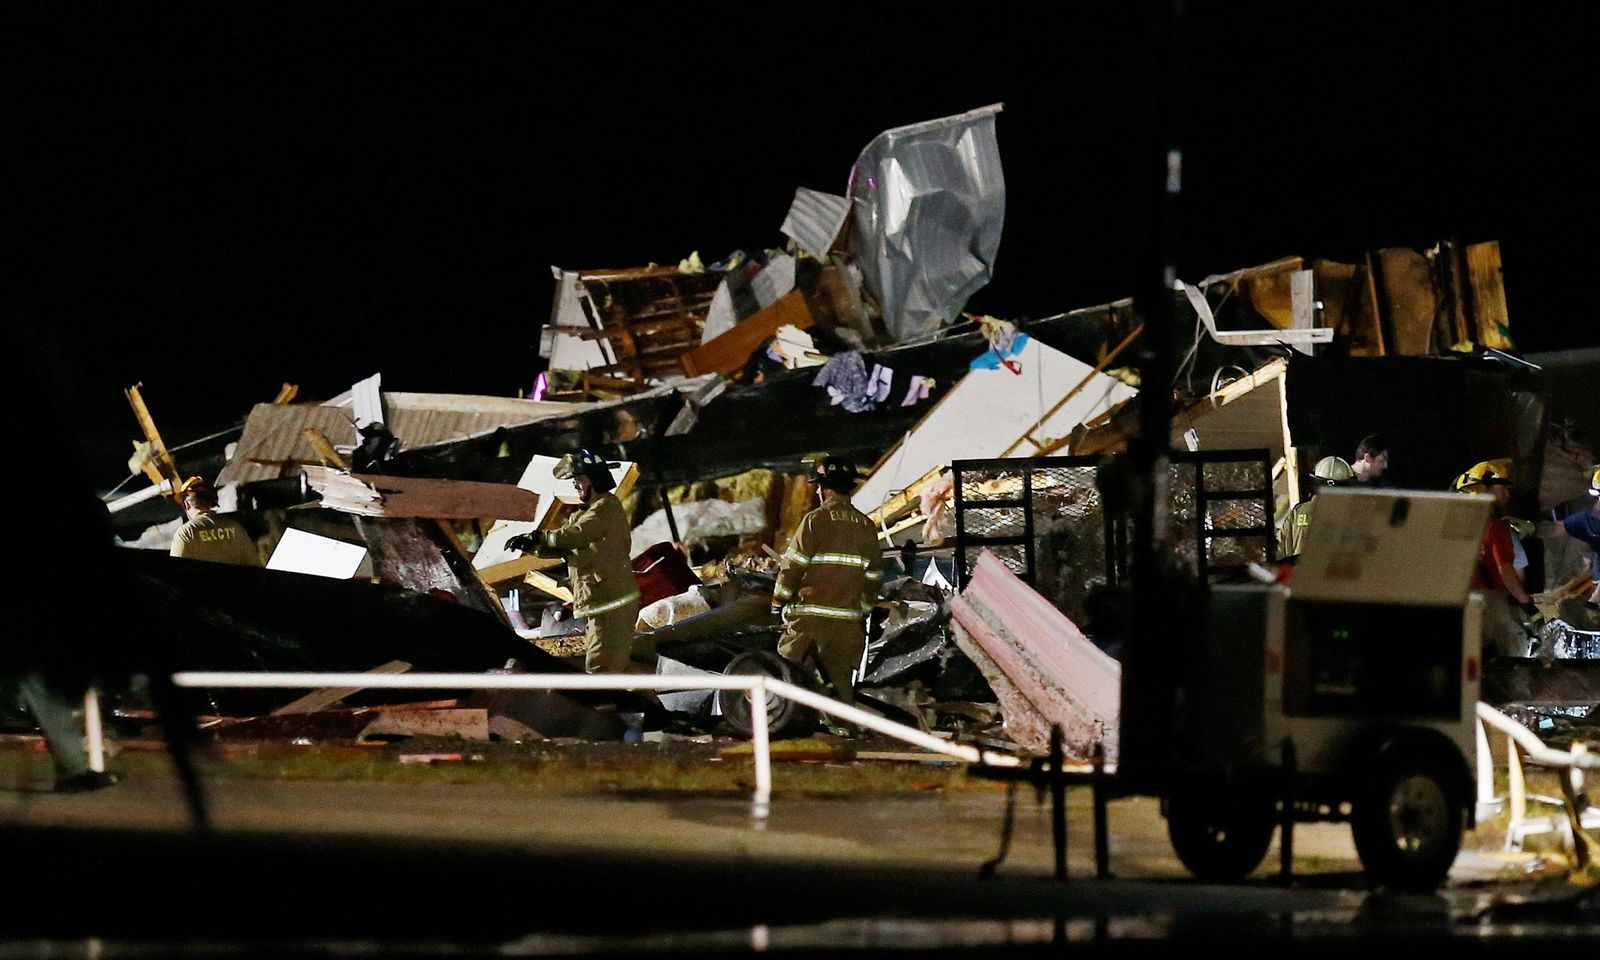 Emergency workers search through debris from a mobile home park, Sunday, May 26, 2019, in El Reno, Ok., following a likely tornado touchdown late Saturday night. (AP Photo/Sue Ogrocki)